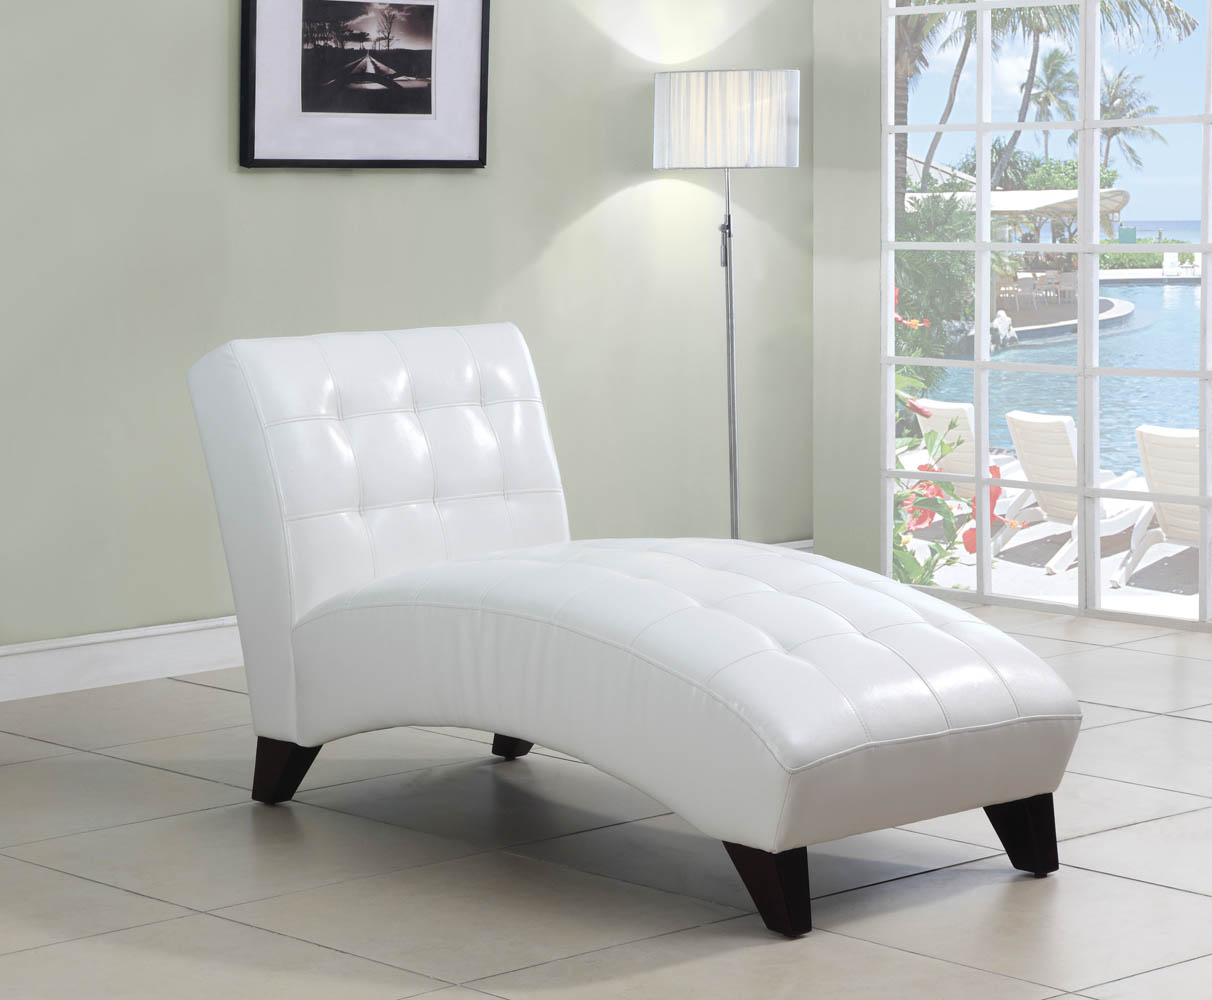 white leather chaise lounge white faux leather lounge chaise 21985 | UMF15037